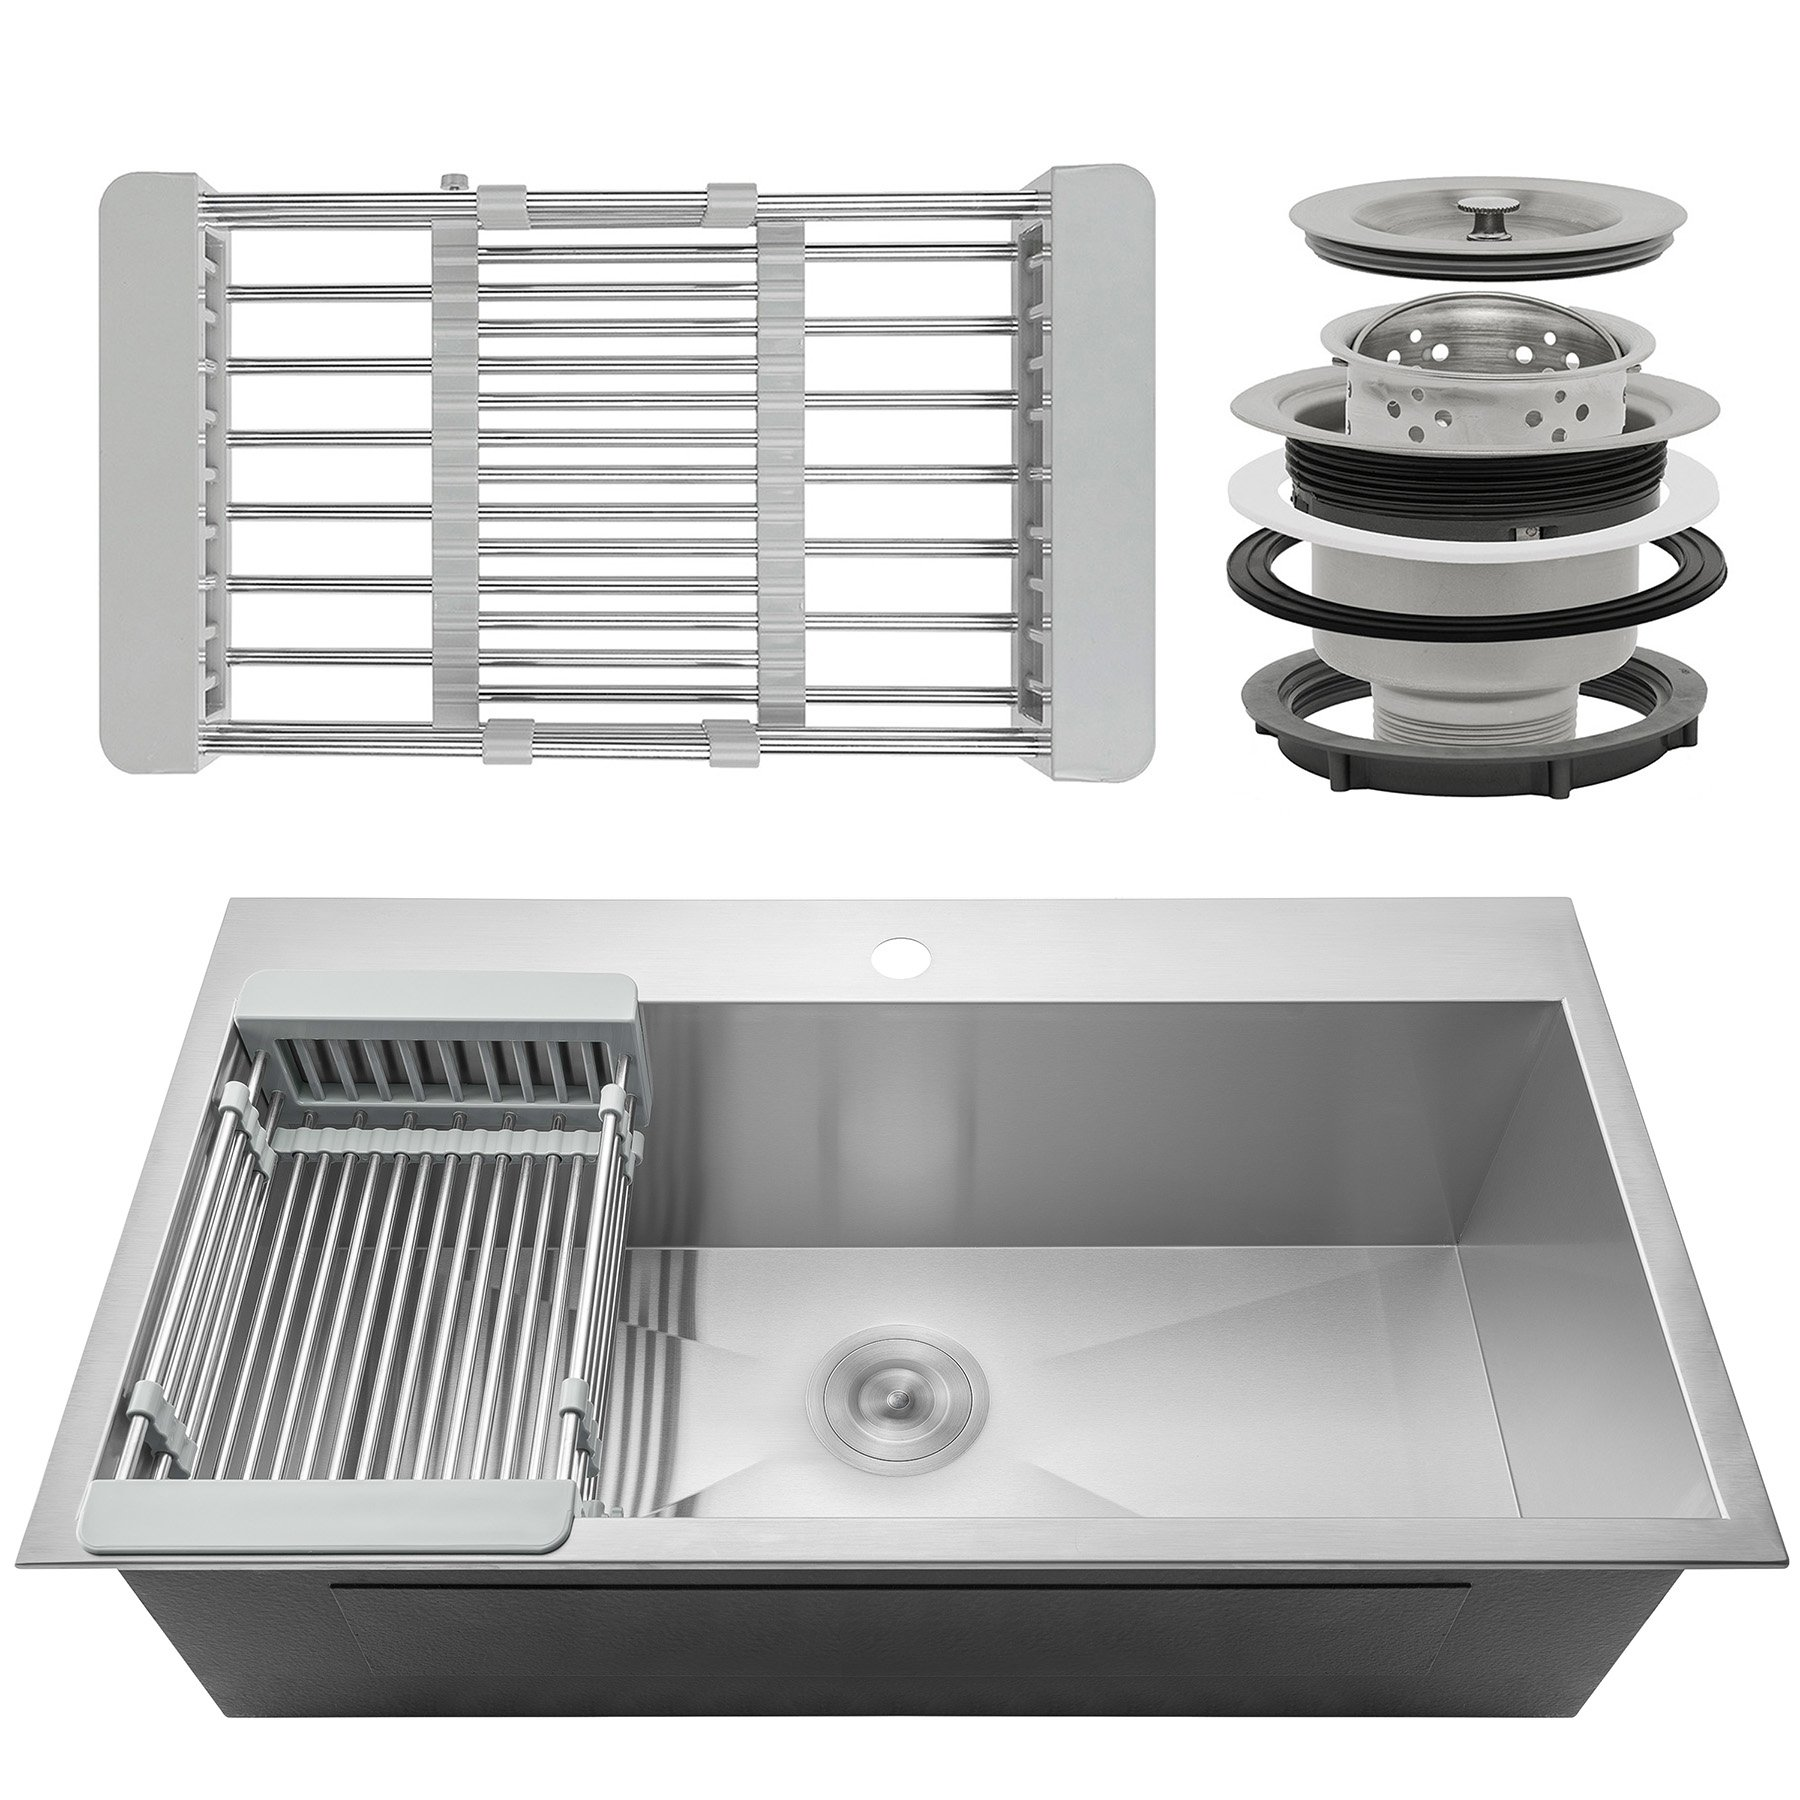 Perfetto Kitchen and Bath 30'' x 18'' x 9'' 18 Gauge Stainless Steel Topmount Kitchen Sink w/ Strainer & Adjustable Dish Tray by Fire Bird